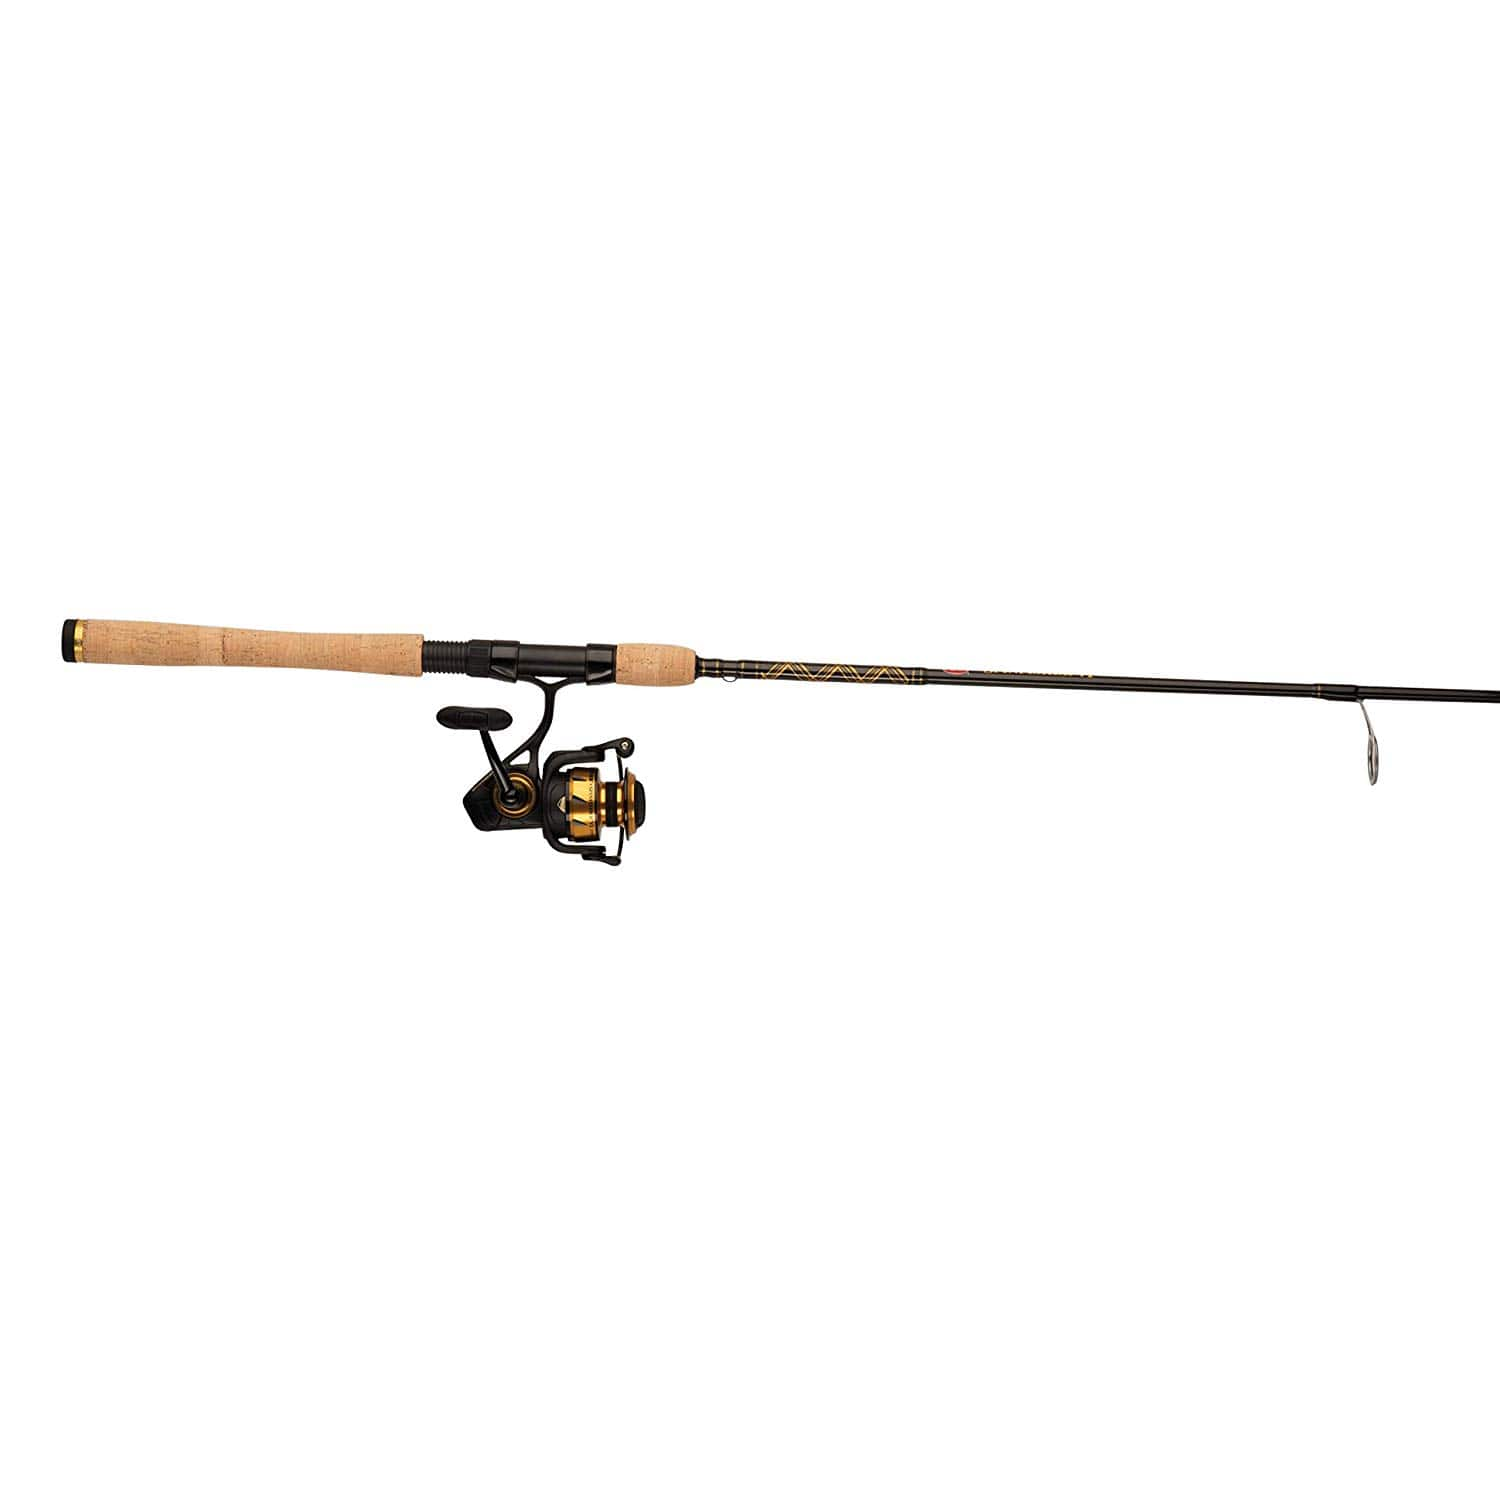 Penn Spinfisher V &VI Fishing Rod and Reel Combos - $139.99 and up amazon.